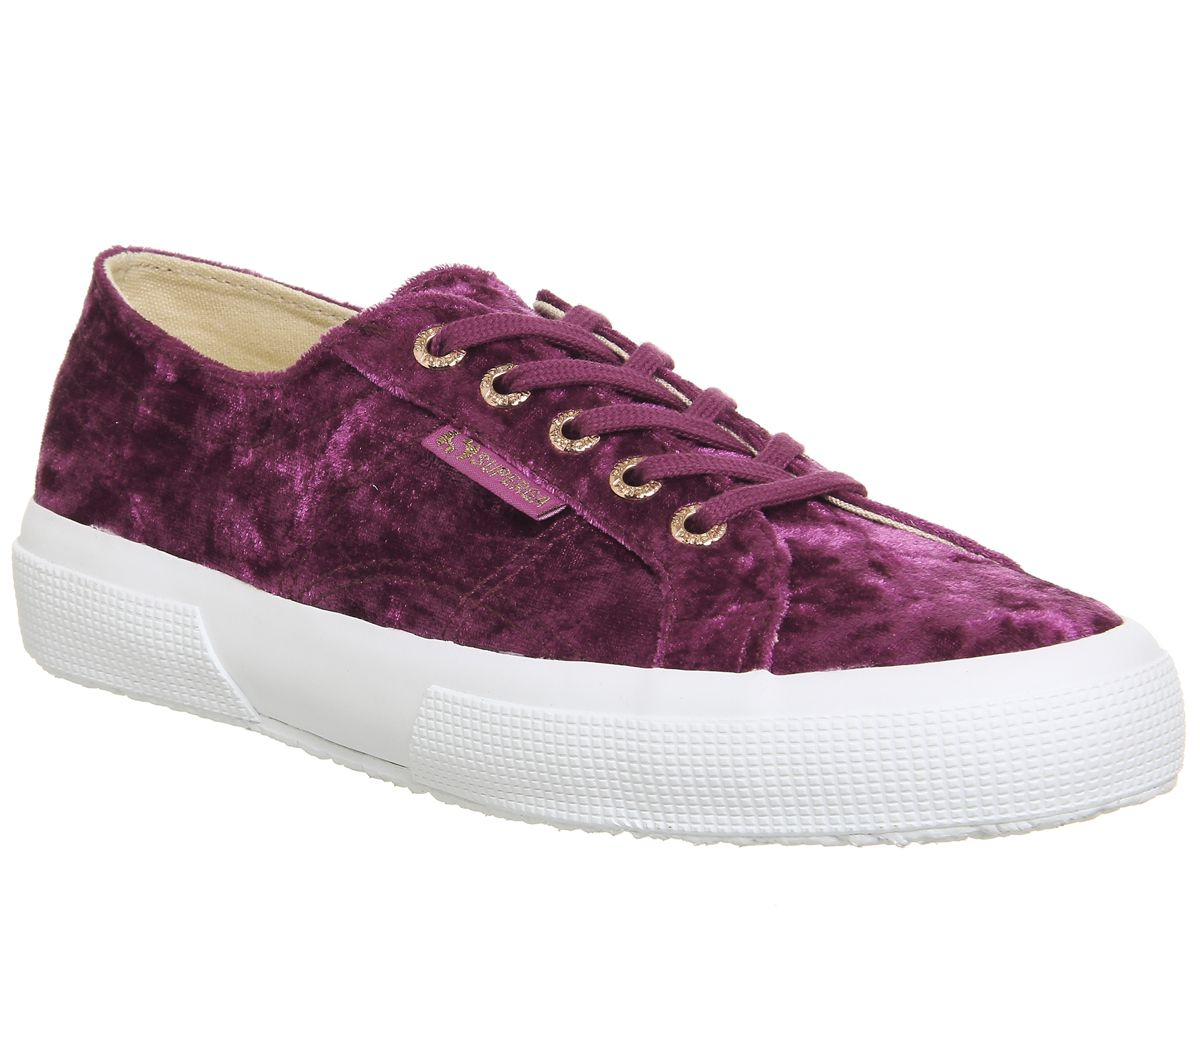 d13d91a7d047f Superga 2750 Trainers Pink Ash Rose Velvet - Hers trainers